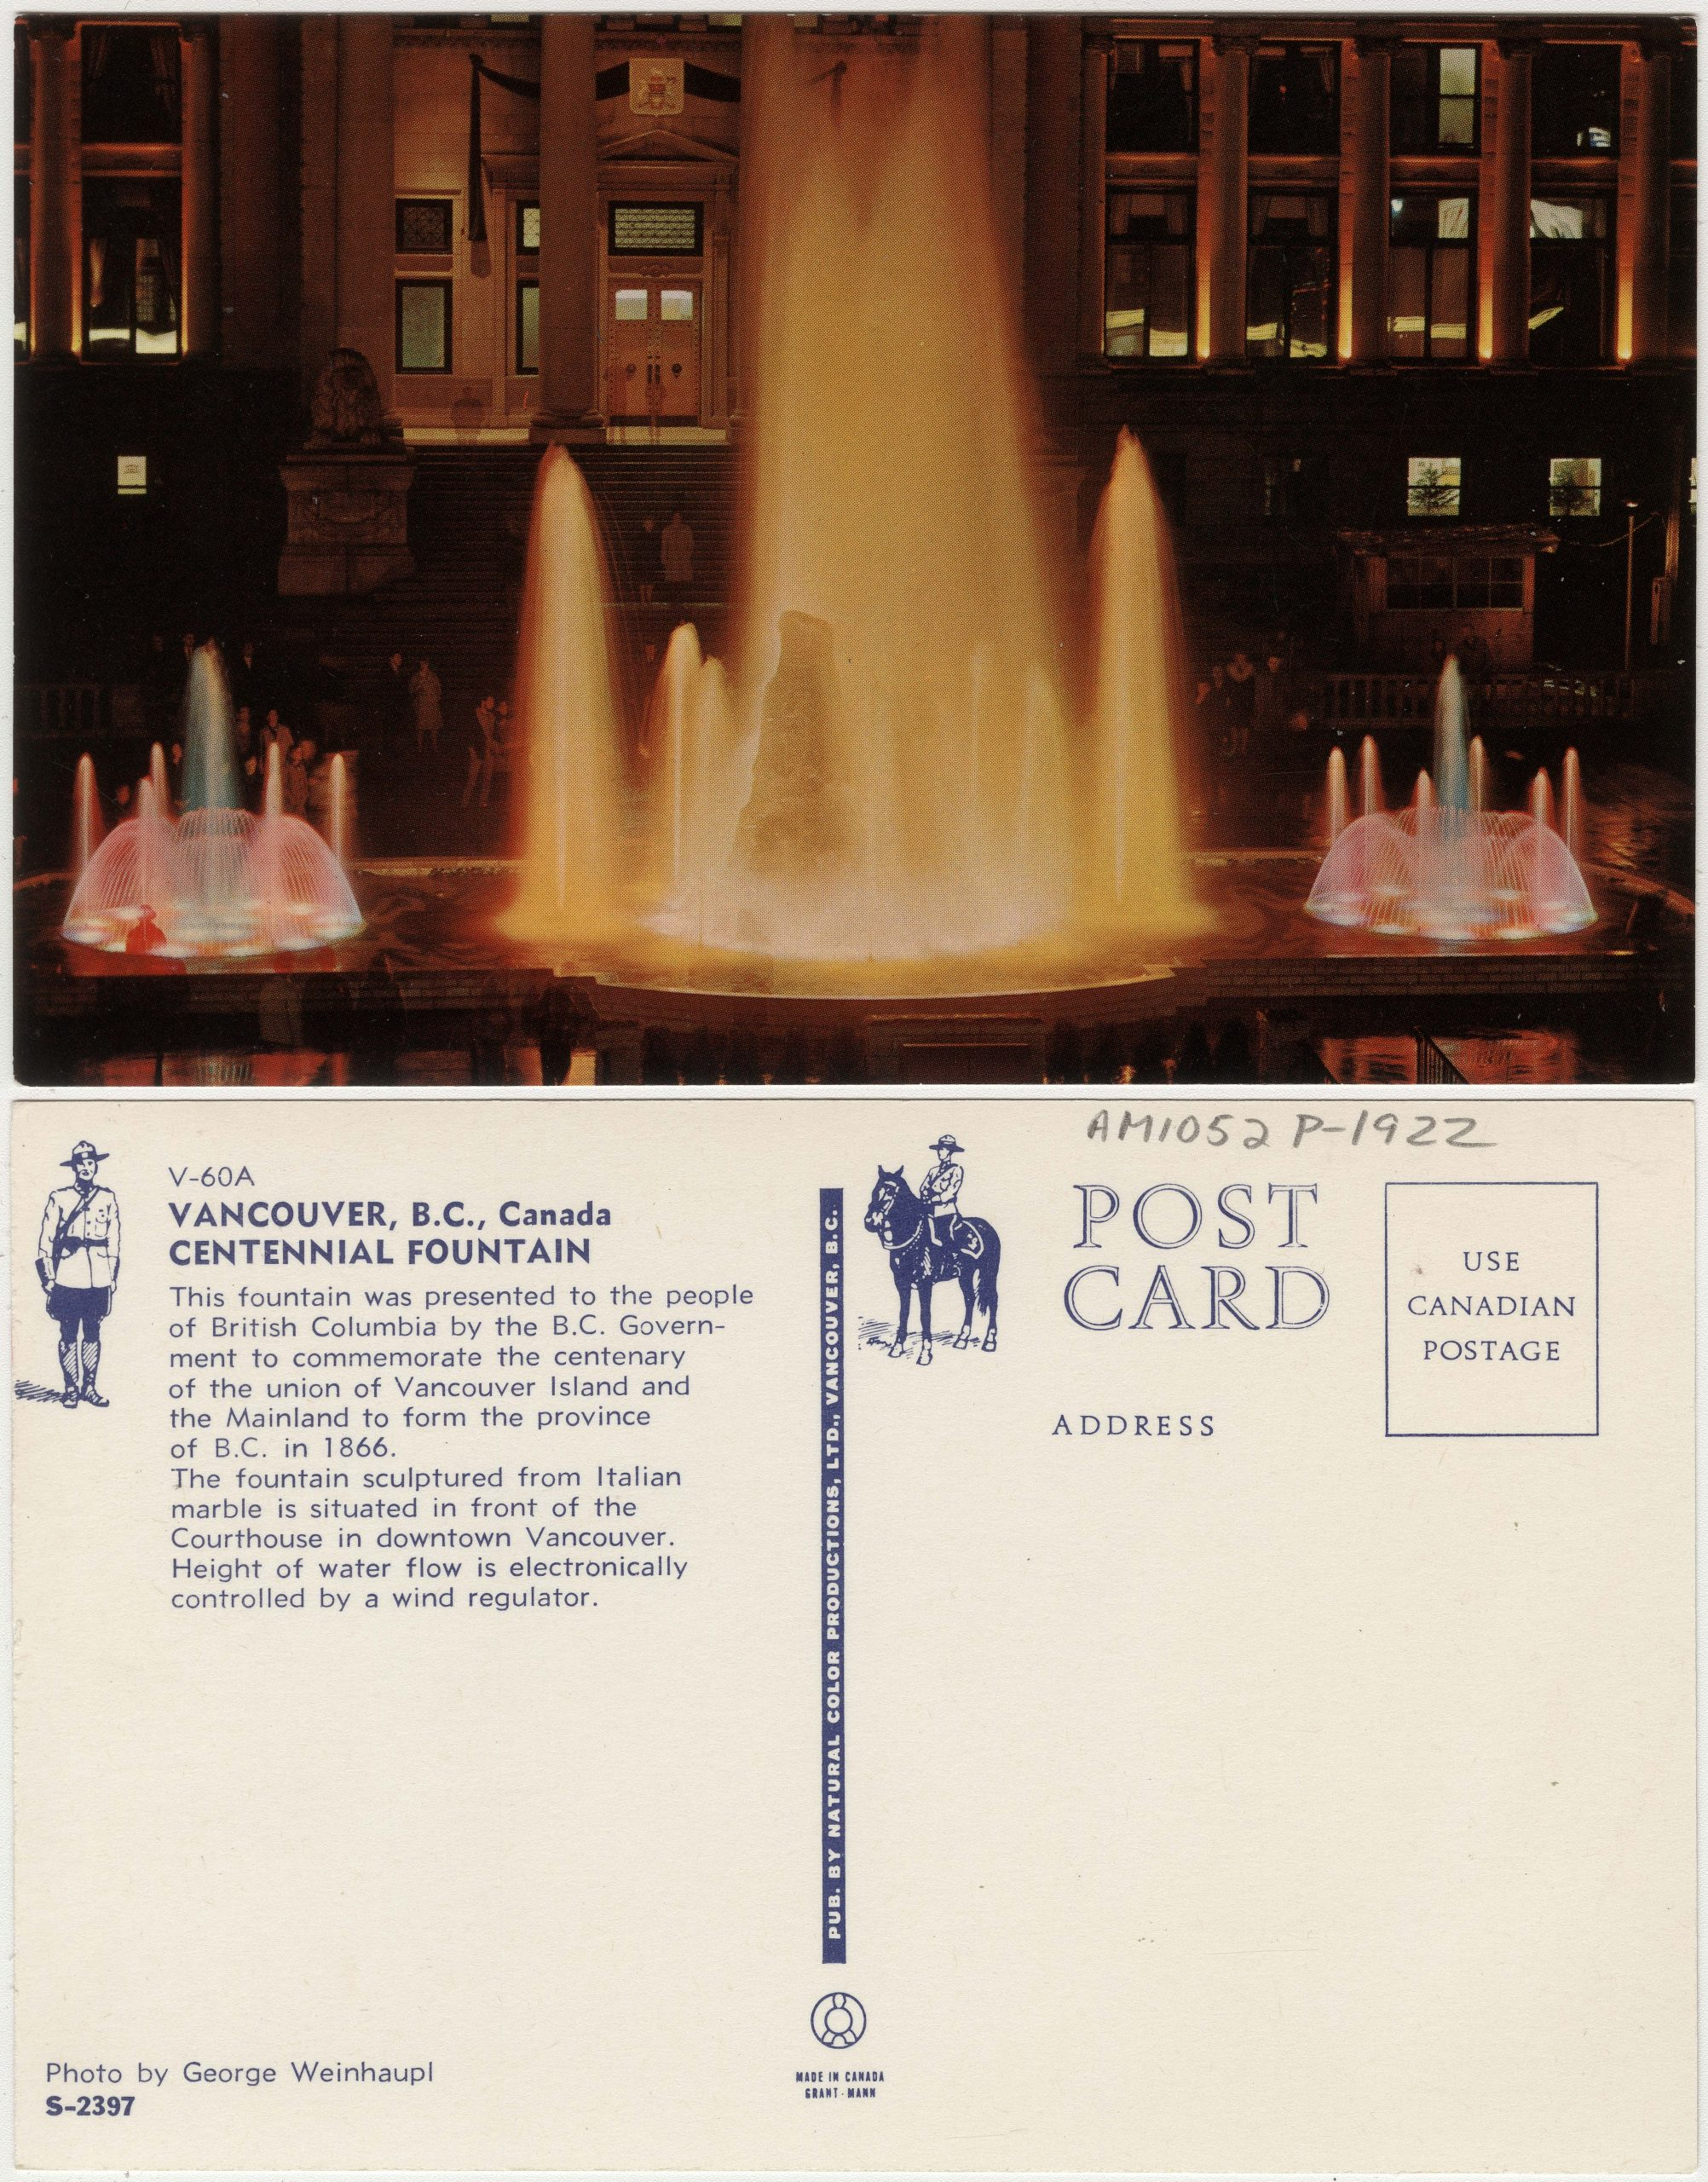 Vancouver, B.C., Canada : Centennial Fountain, about 1970. Reference code AM1052-: AM1052 P-1922